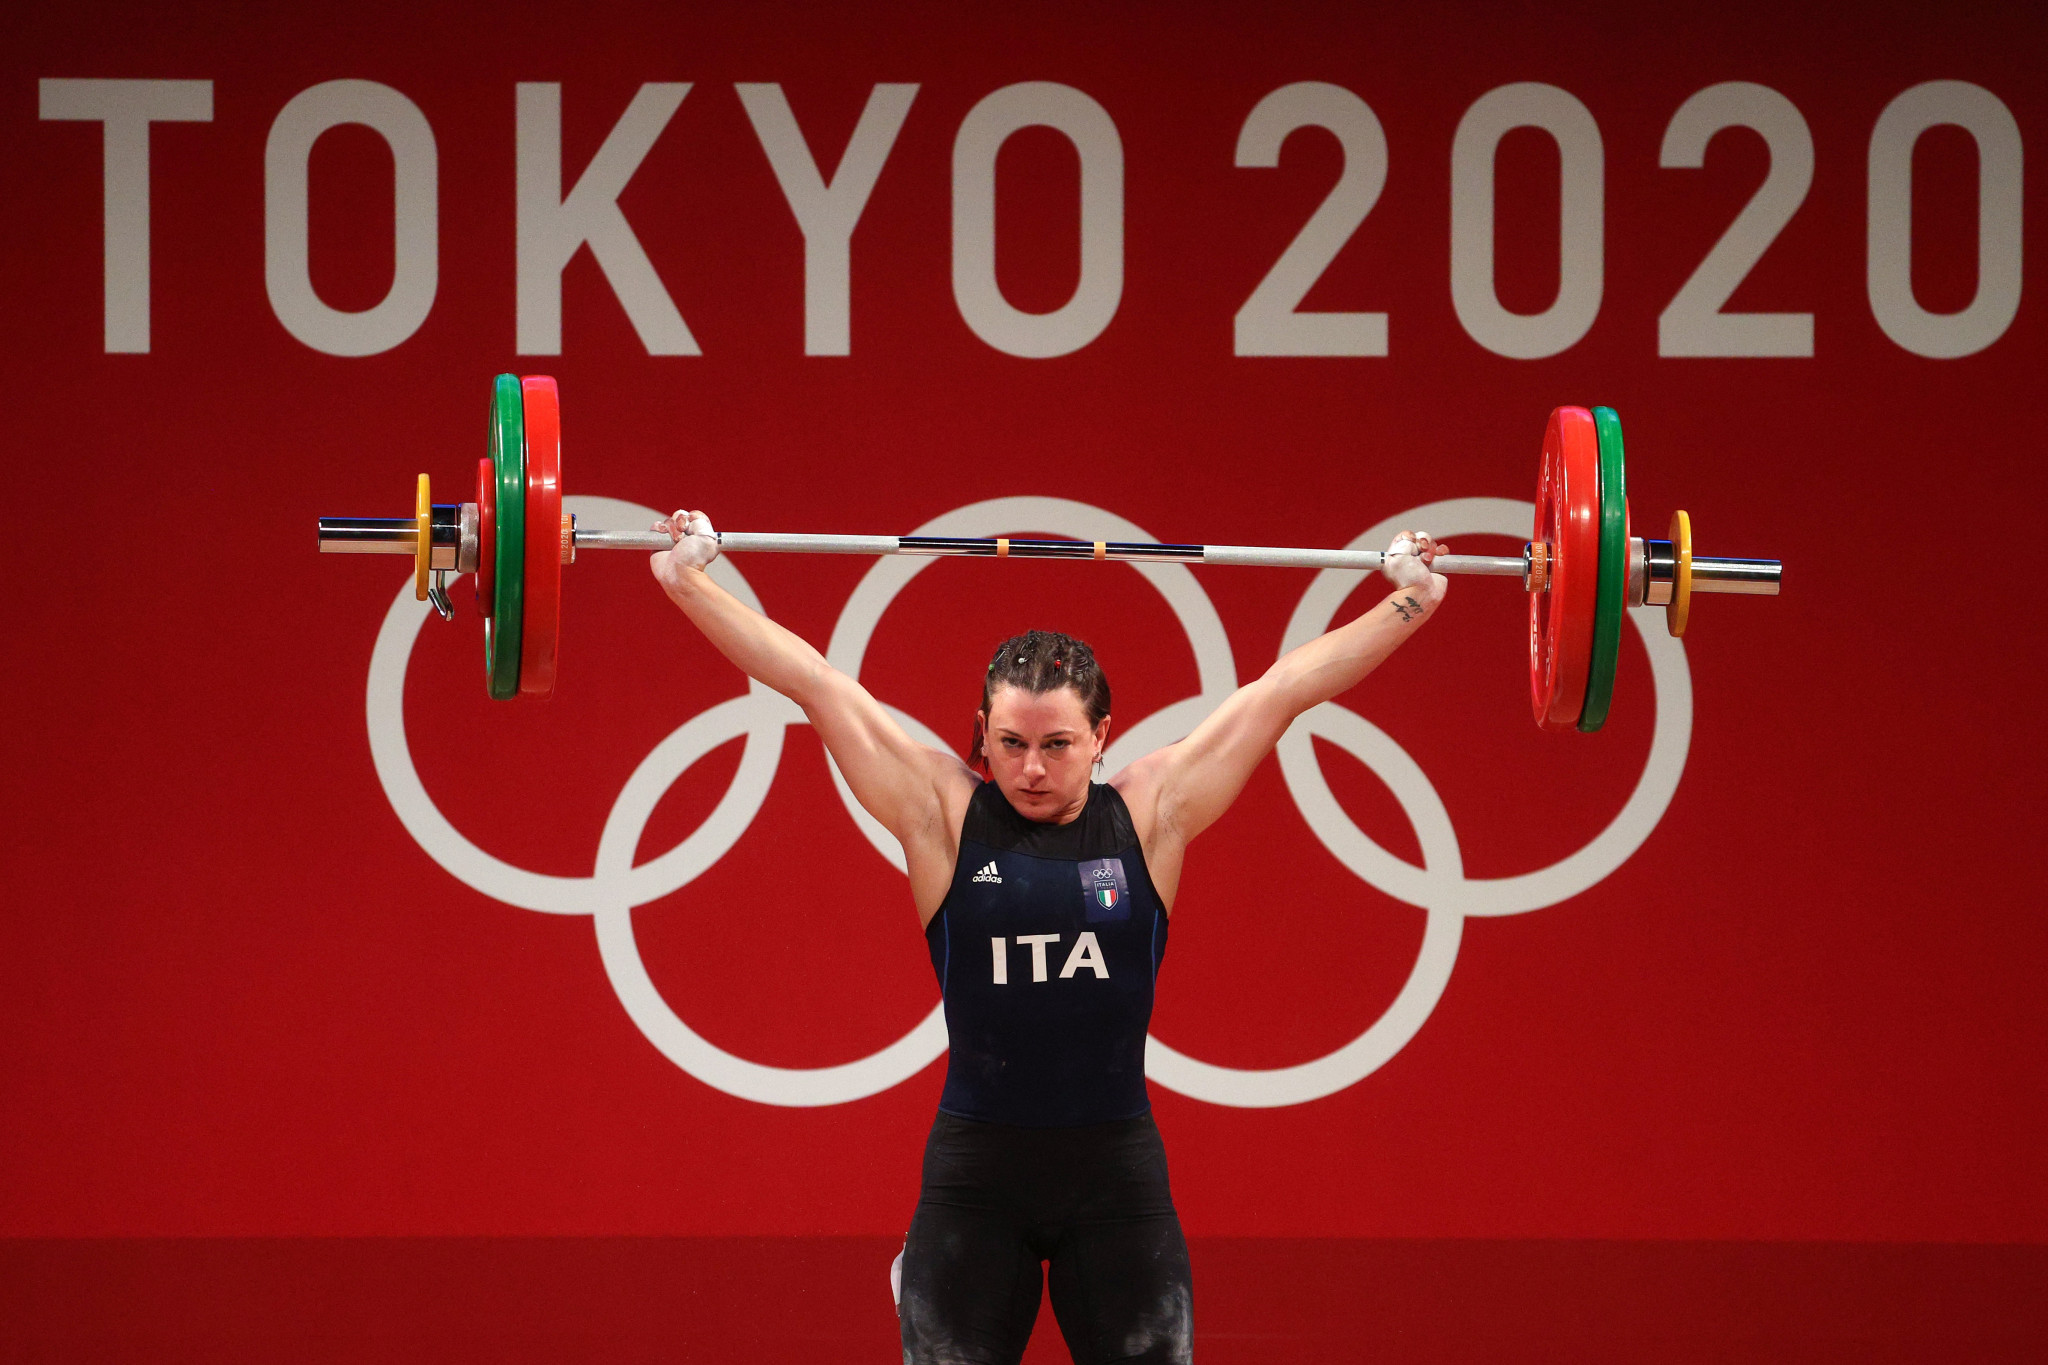 Giorgia Bordignon of Italy claimed the silver medal in the women's 64kg category at the Tokyo 2020 Olympics ©Getty Images